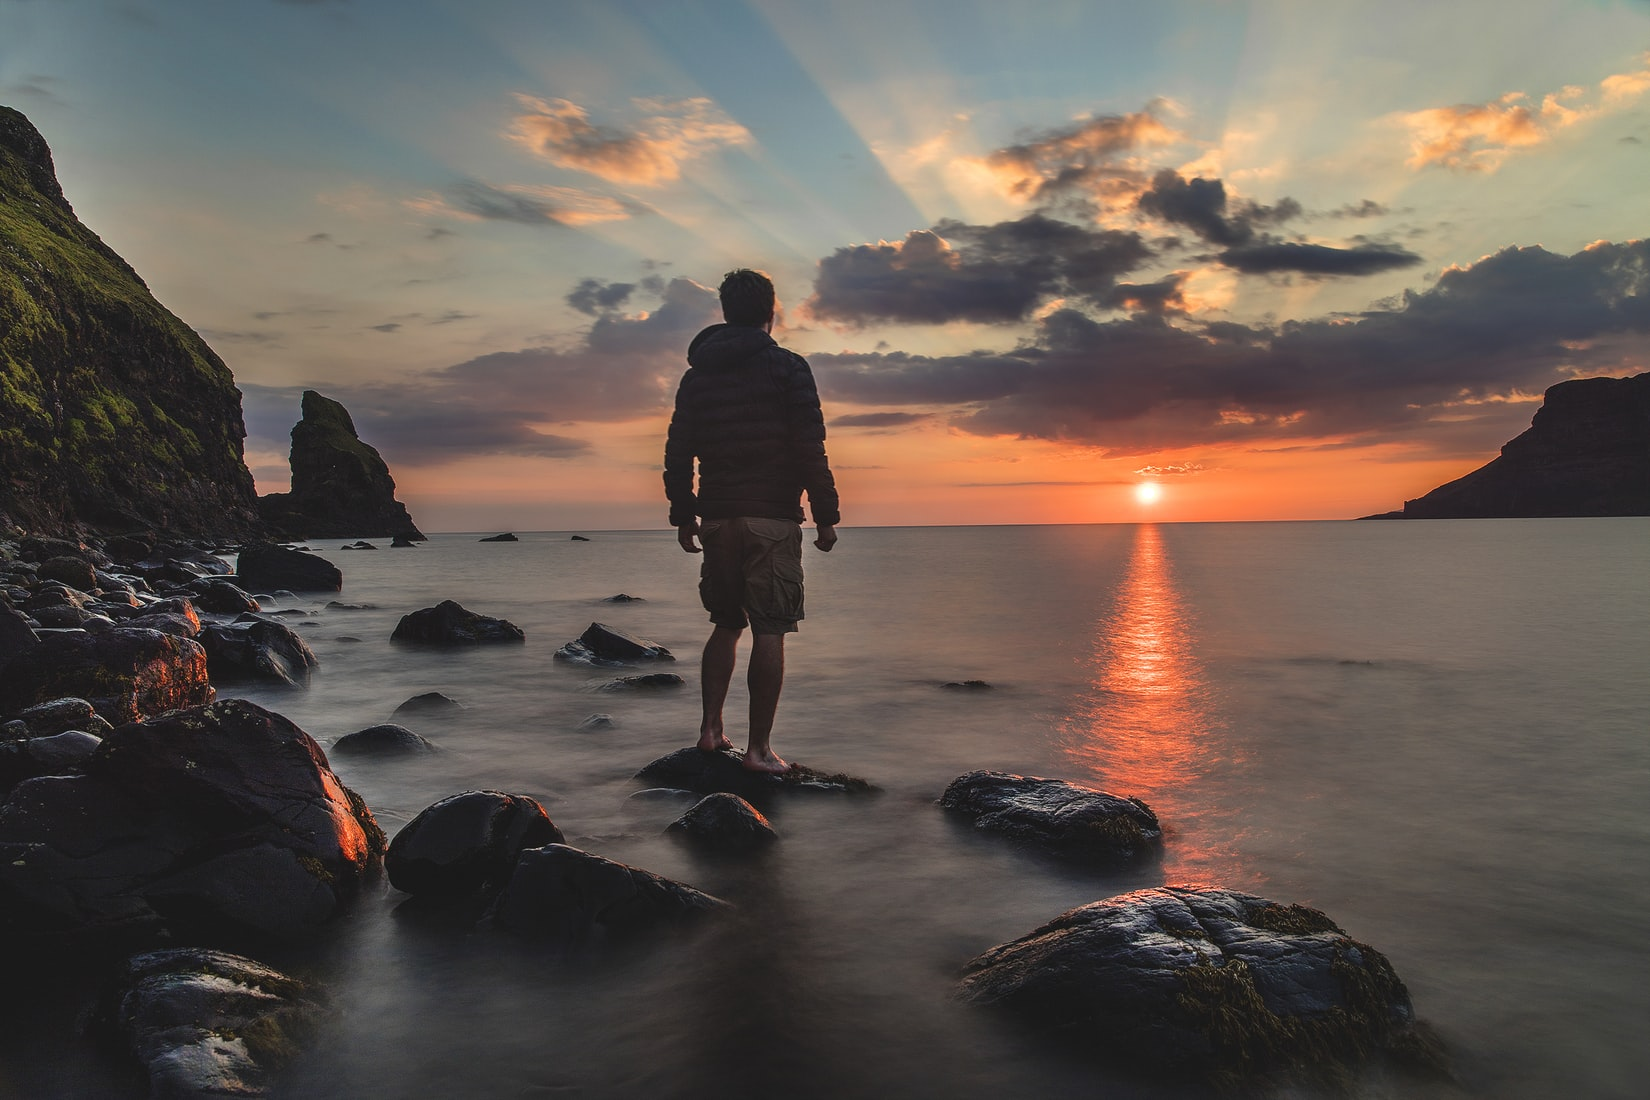 Hopeful man standing on stone in front of body of water looking at sunset